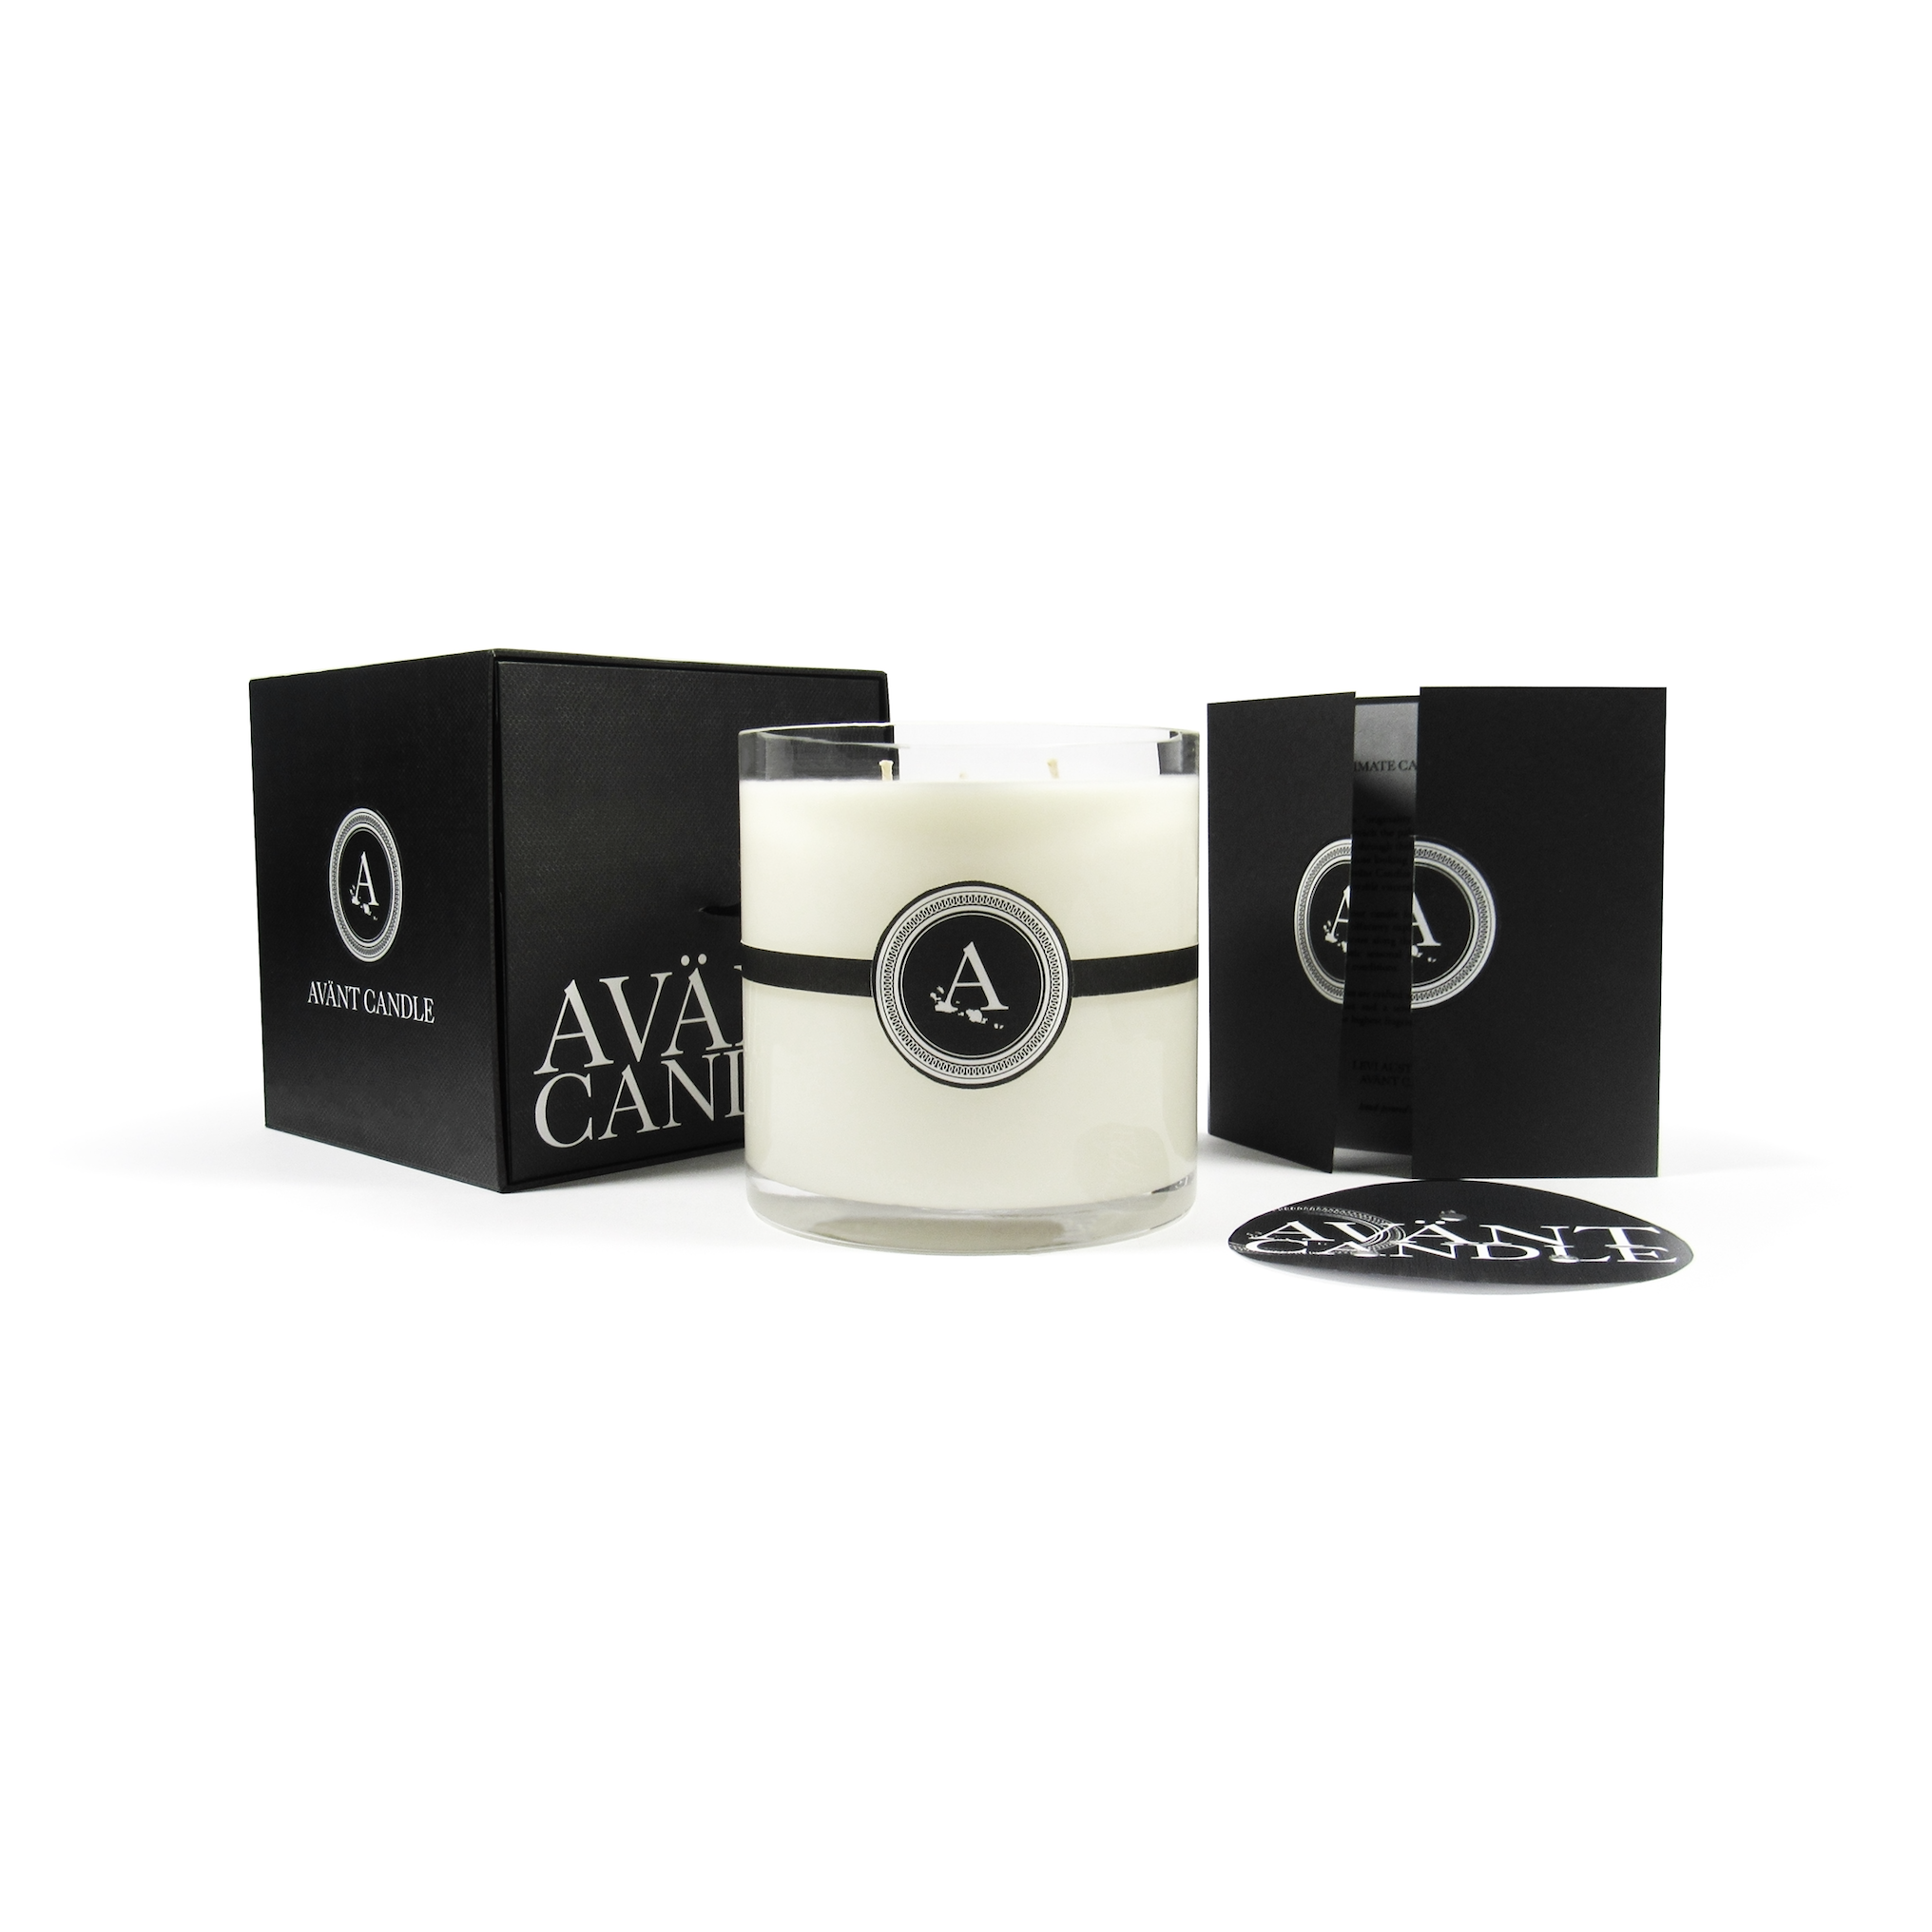 Mid-Sized Candle, 38 OZ